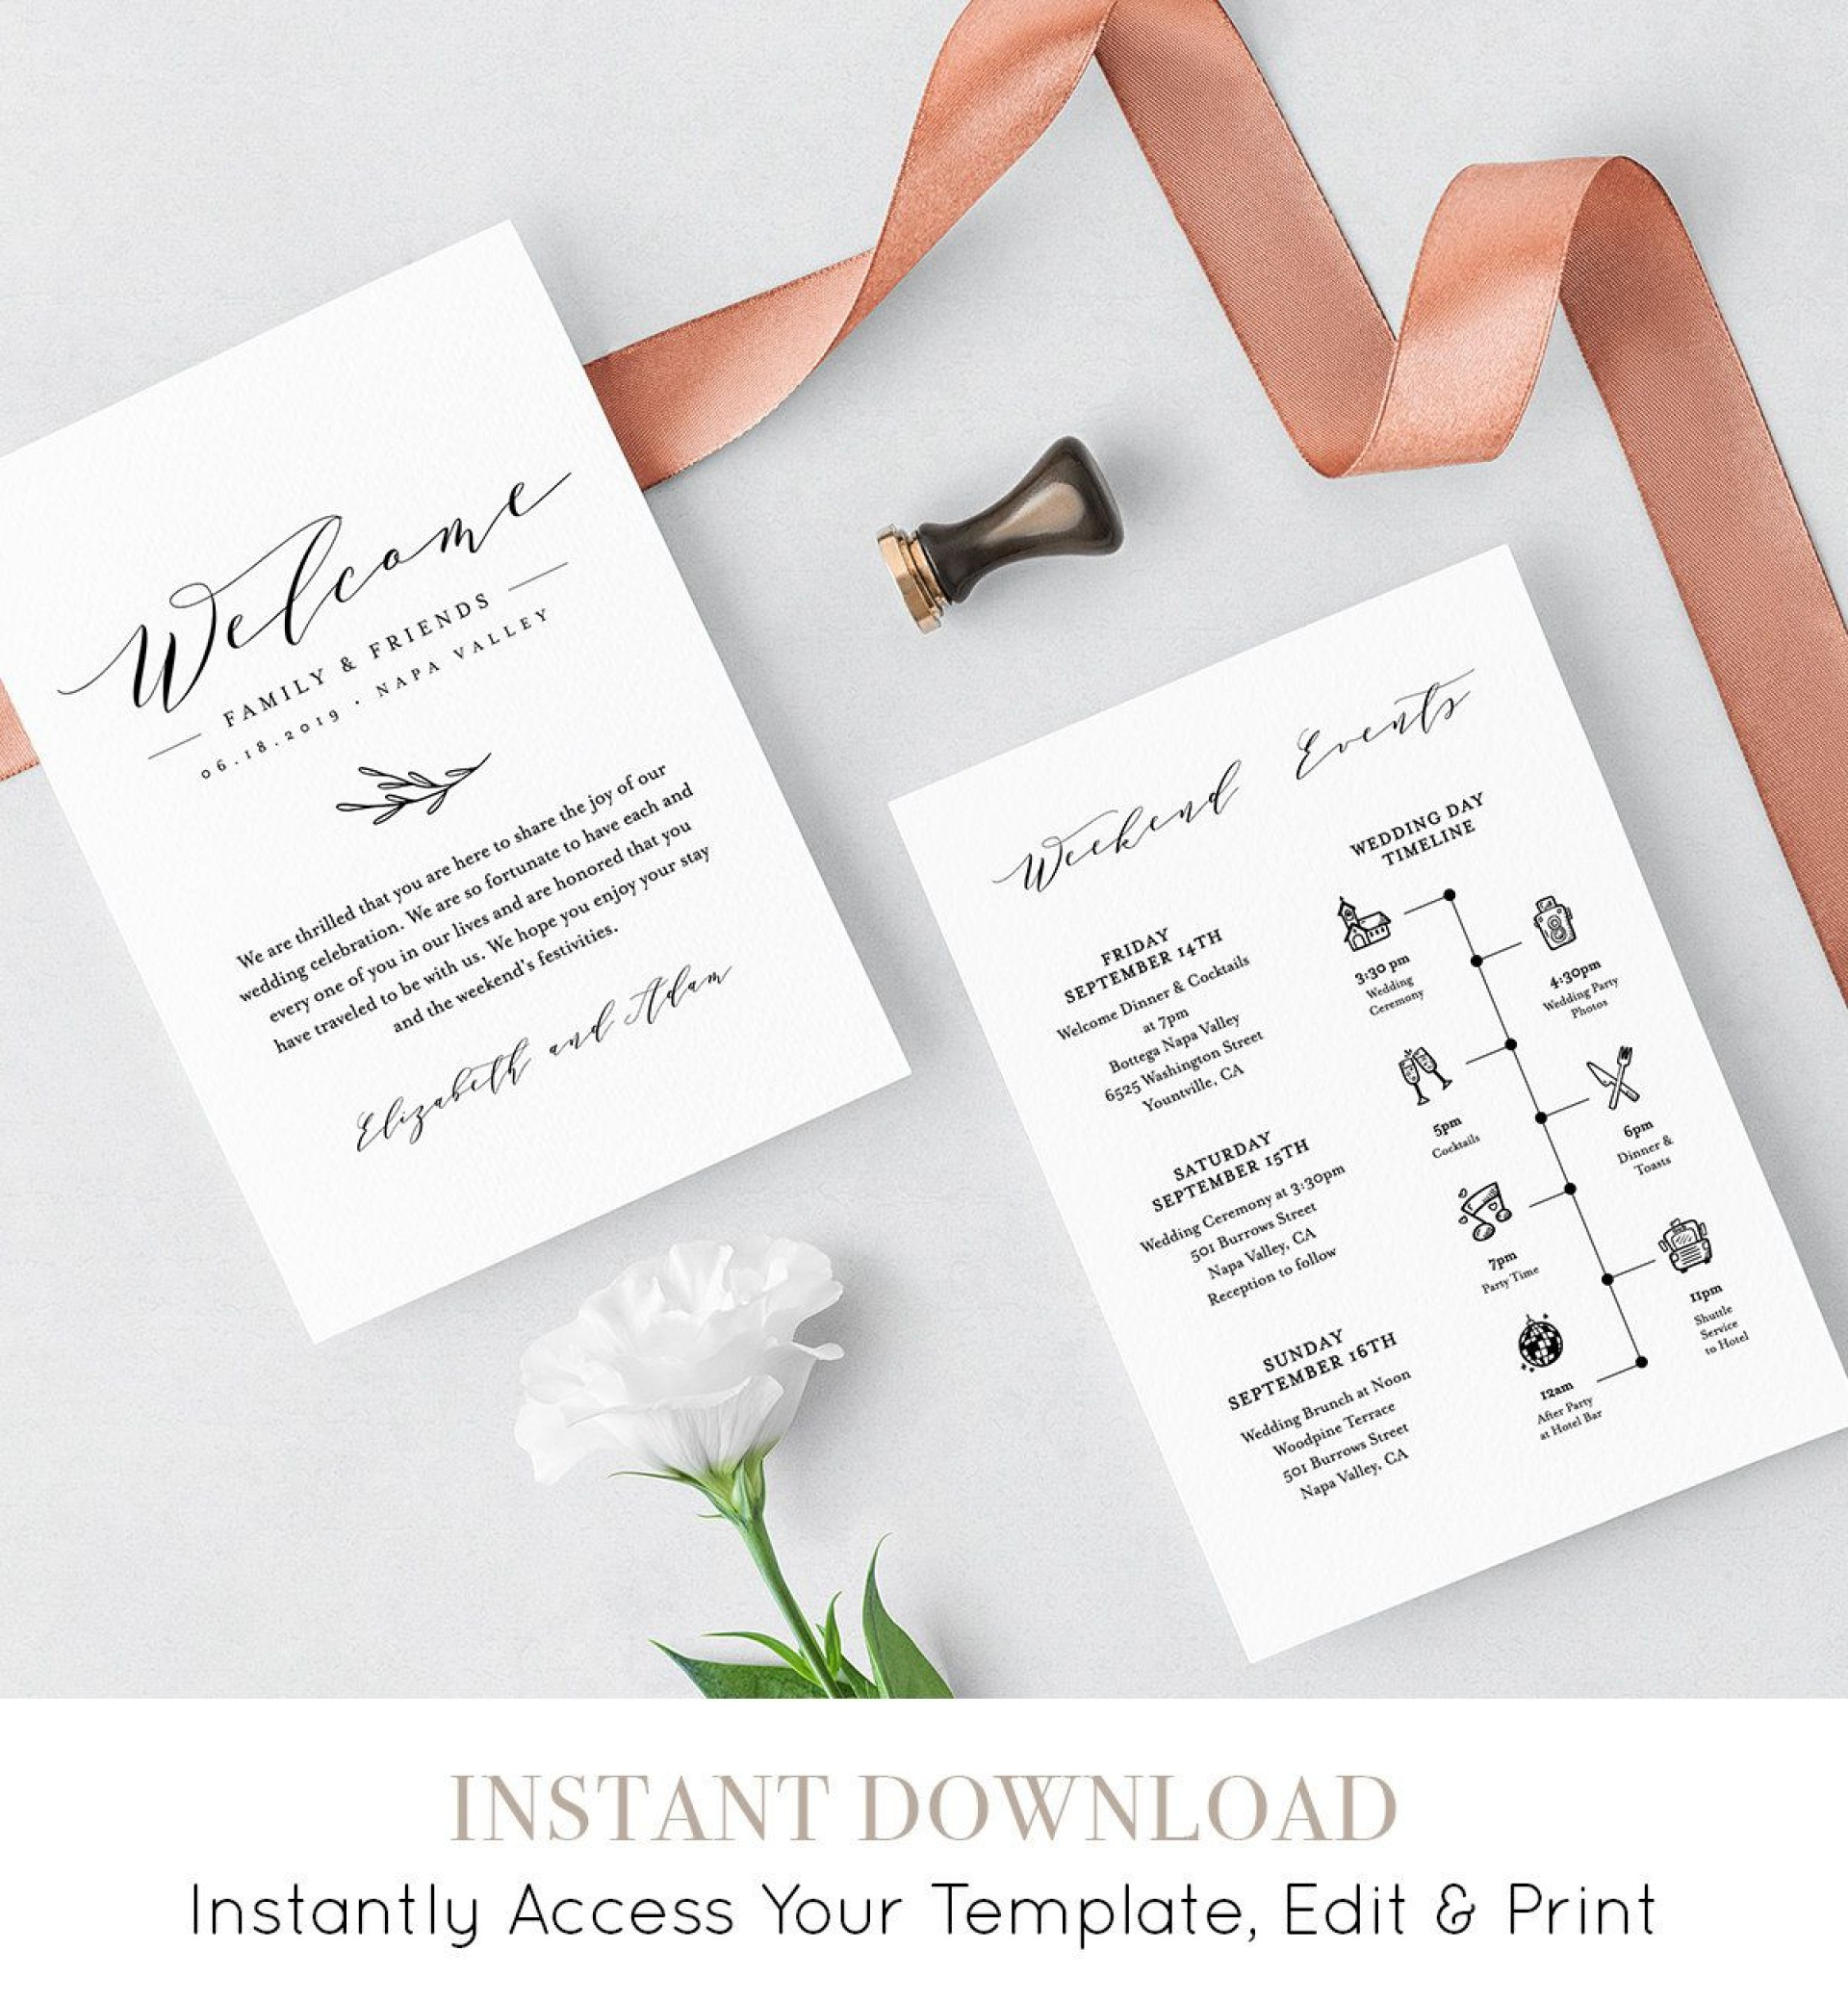 006 Rare Wedding Guest Welcome Letter Template Example 1920